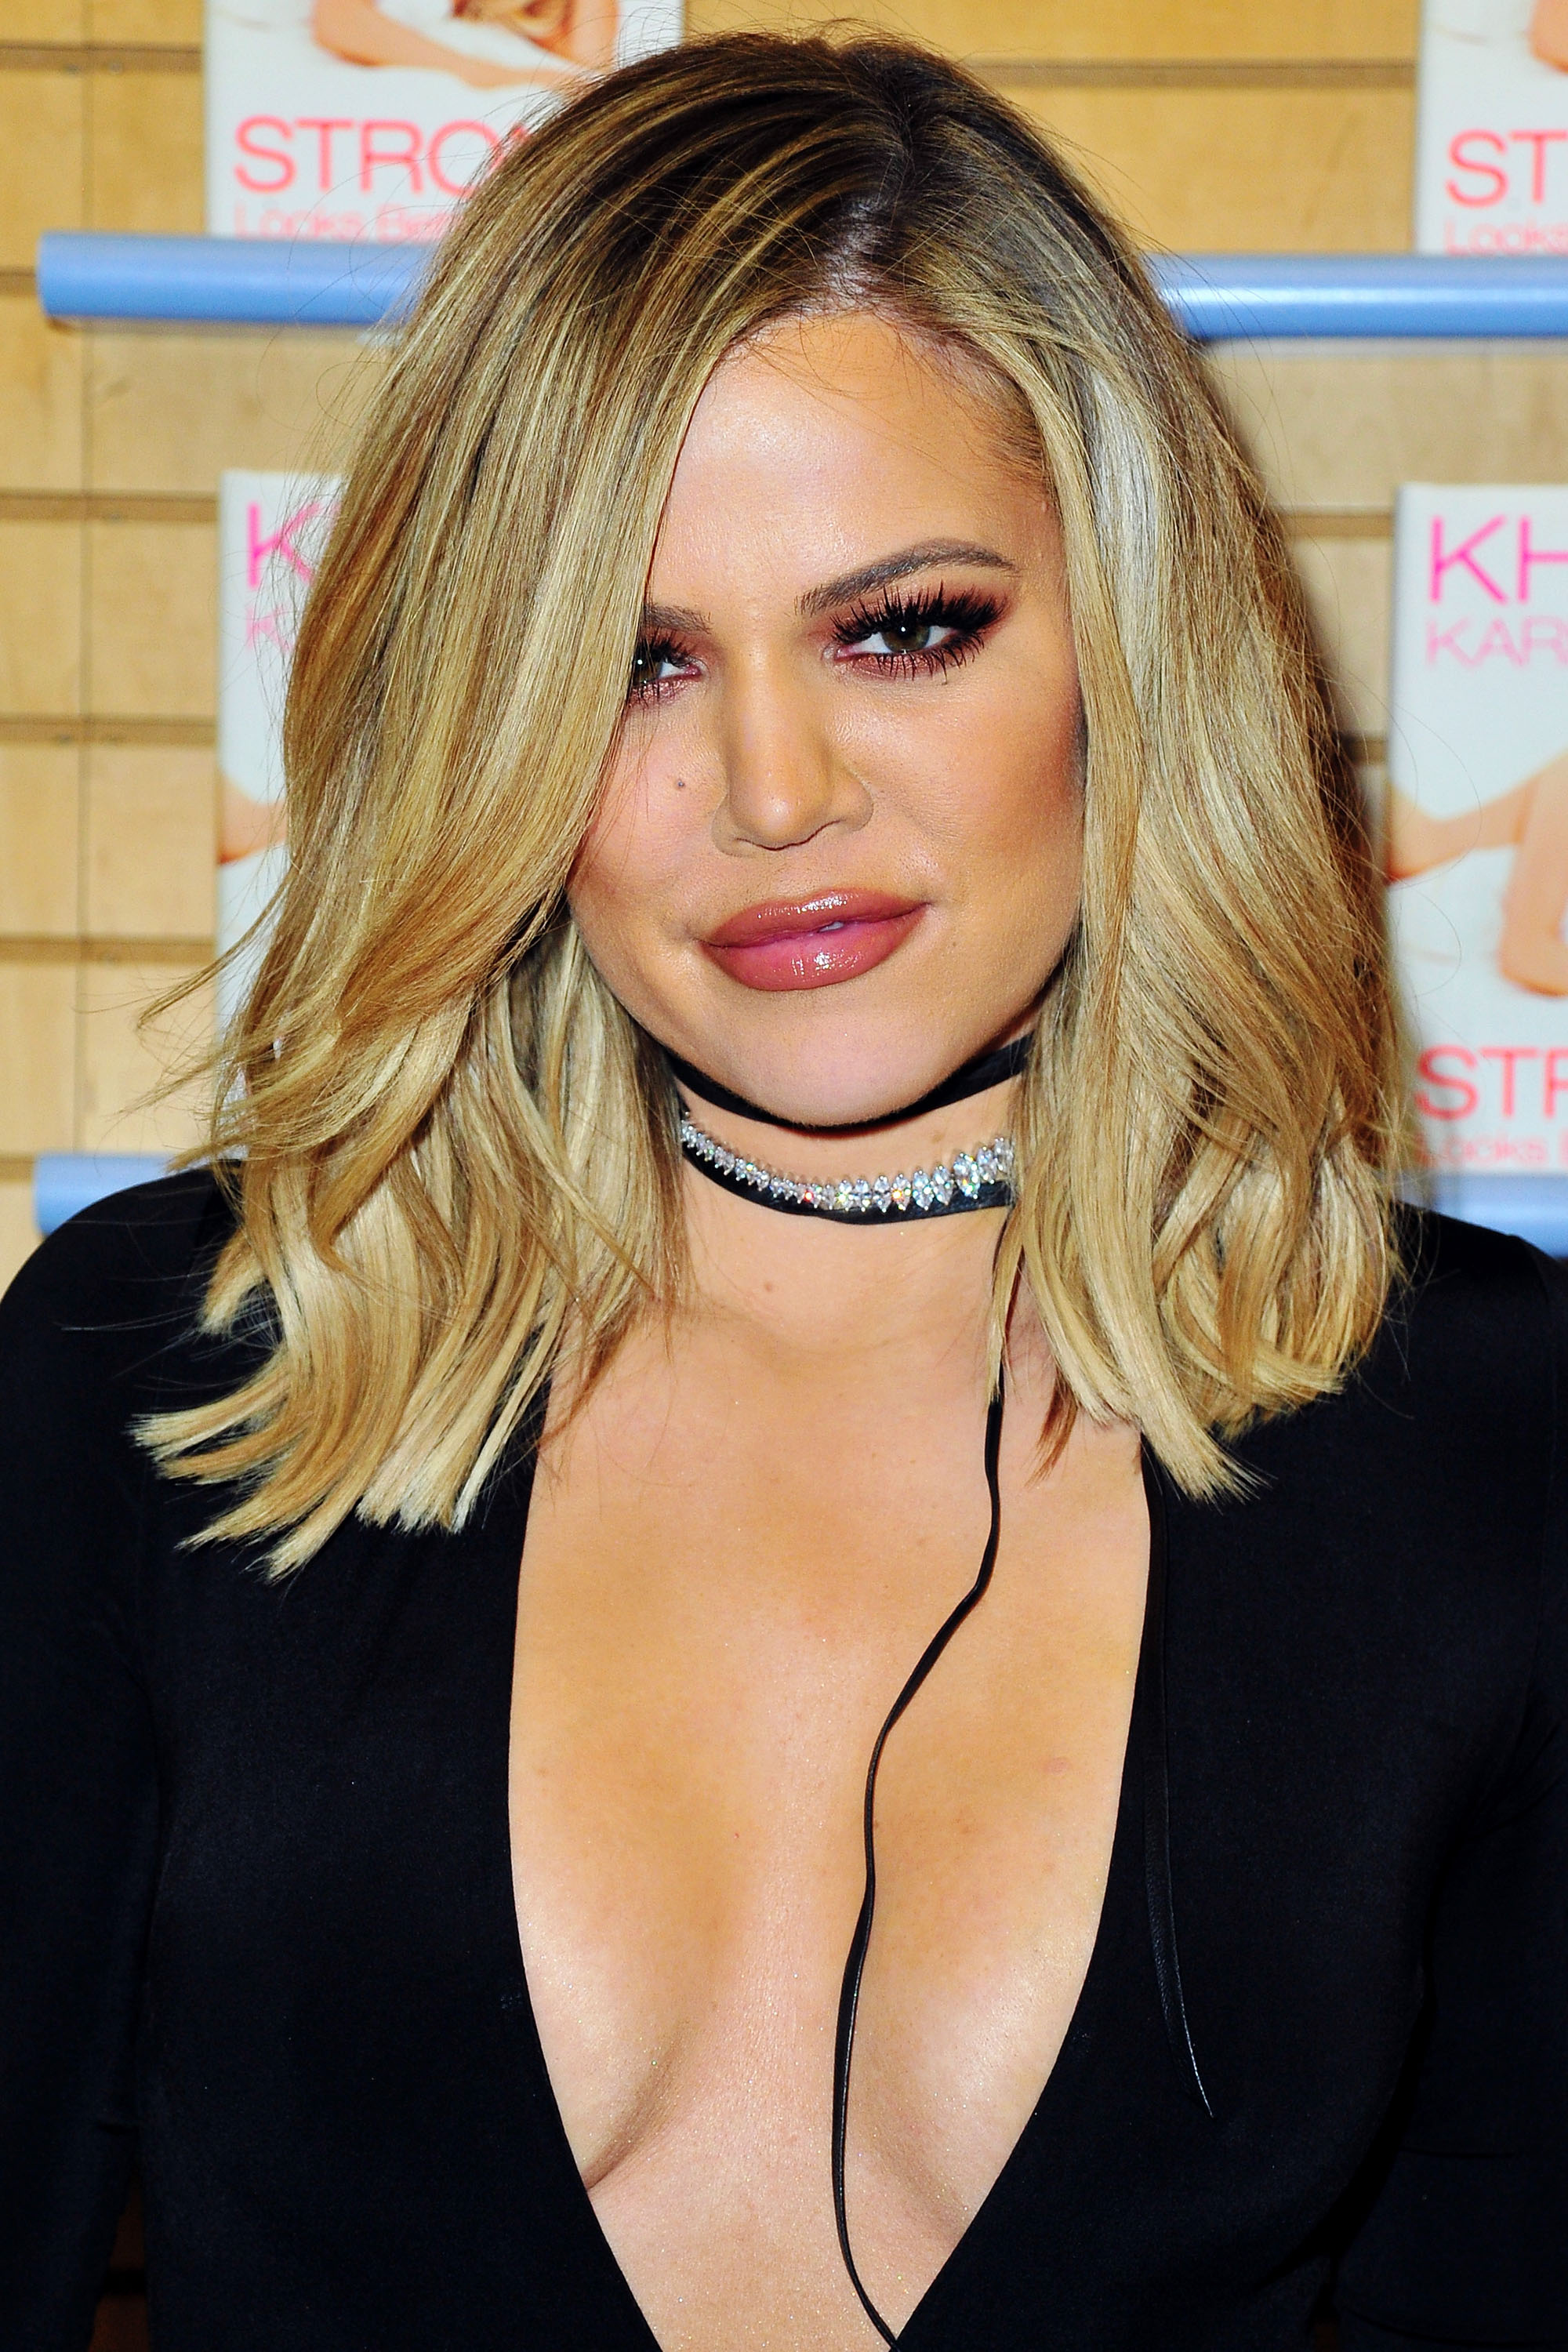 khloe kardashian - photo #3